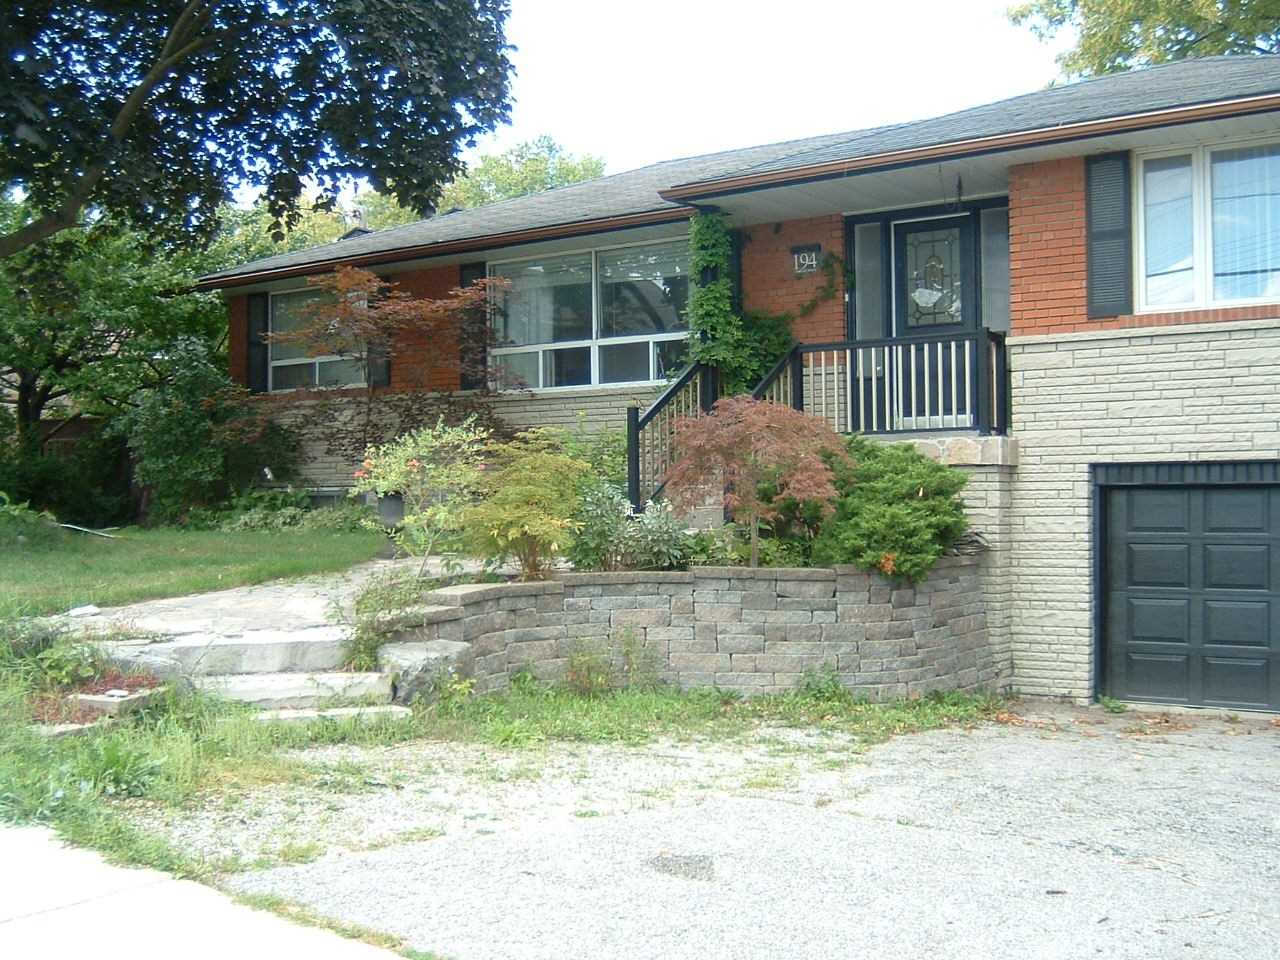 Detached house For Sale In Bradford West Gwillimbury